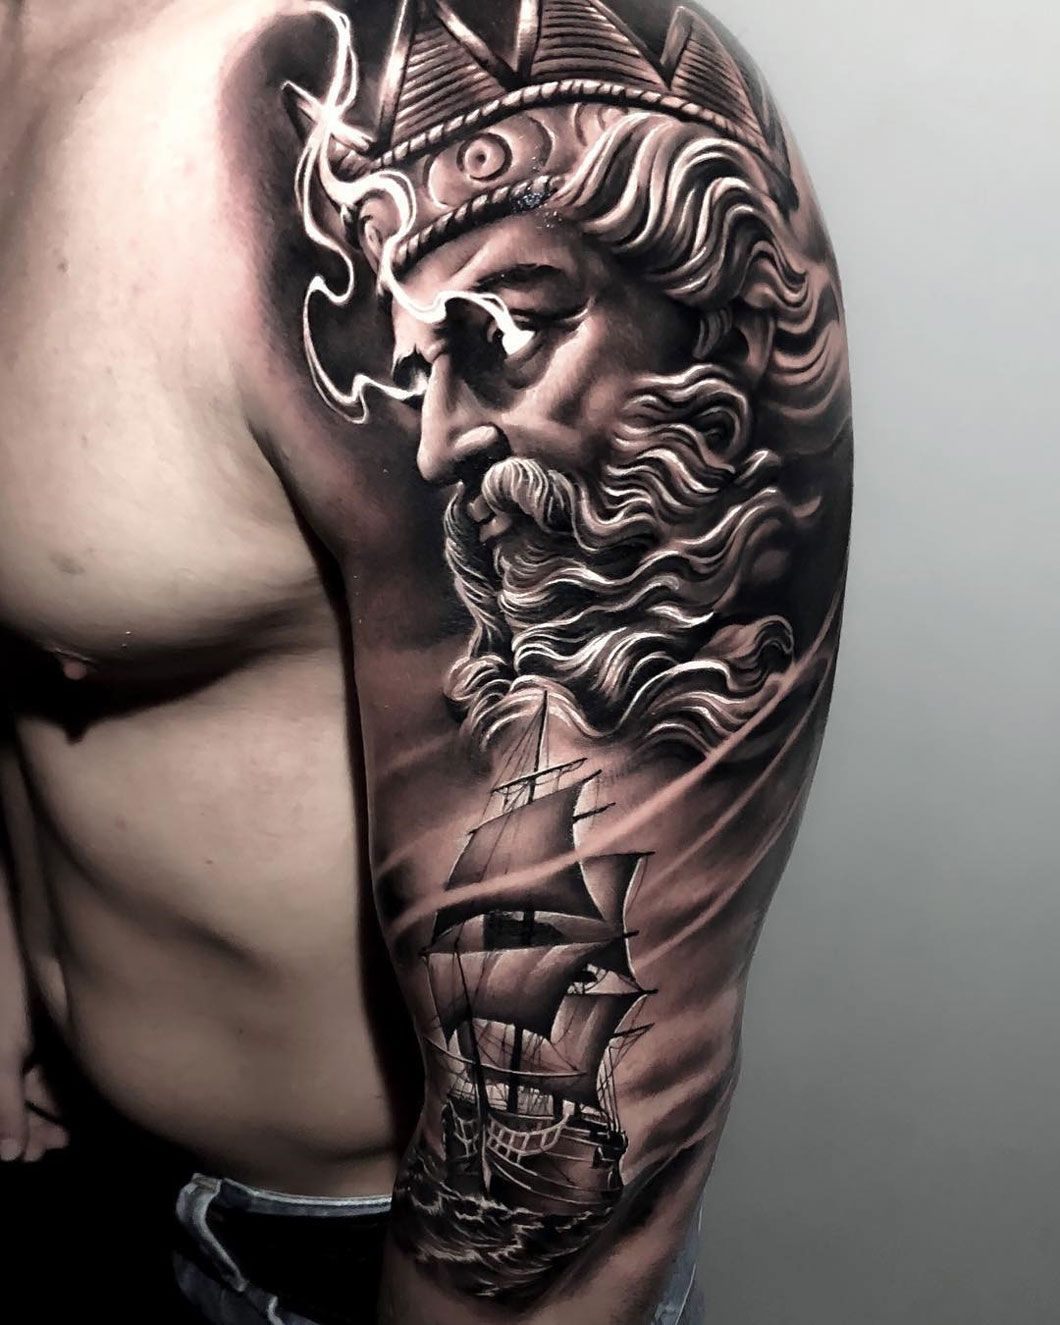 Poseidon Tattoo Design – Three Reasons Why This One Is Great For Modern Tattoos